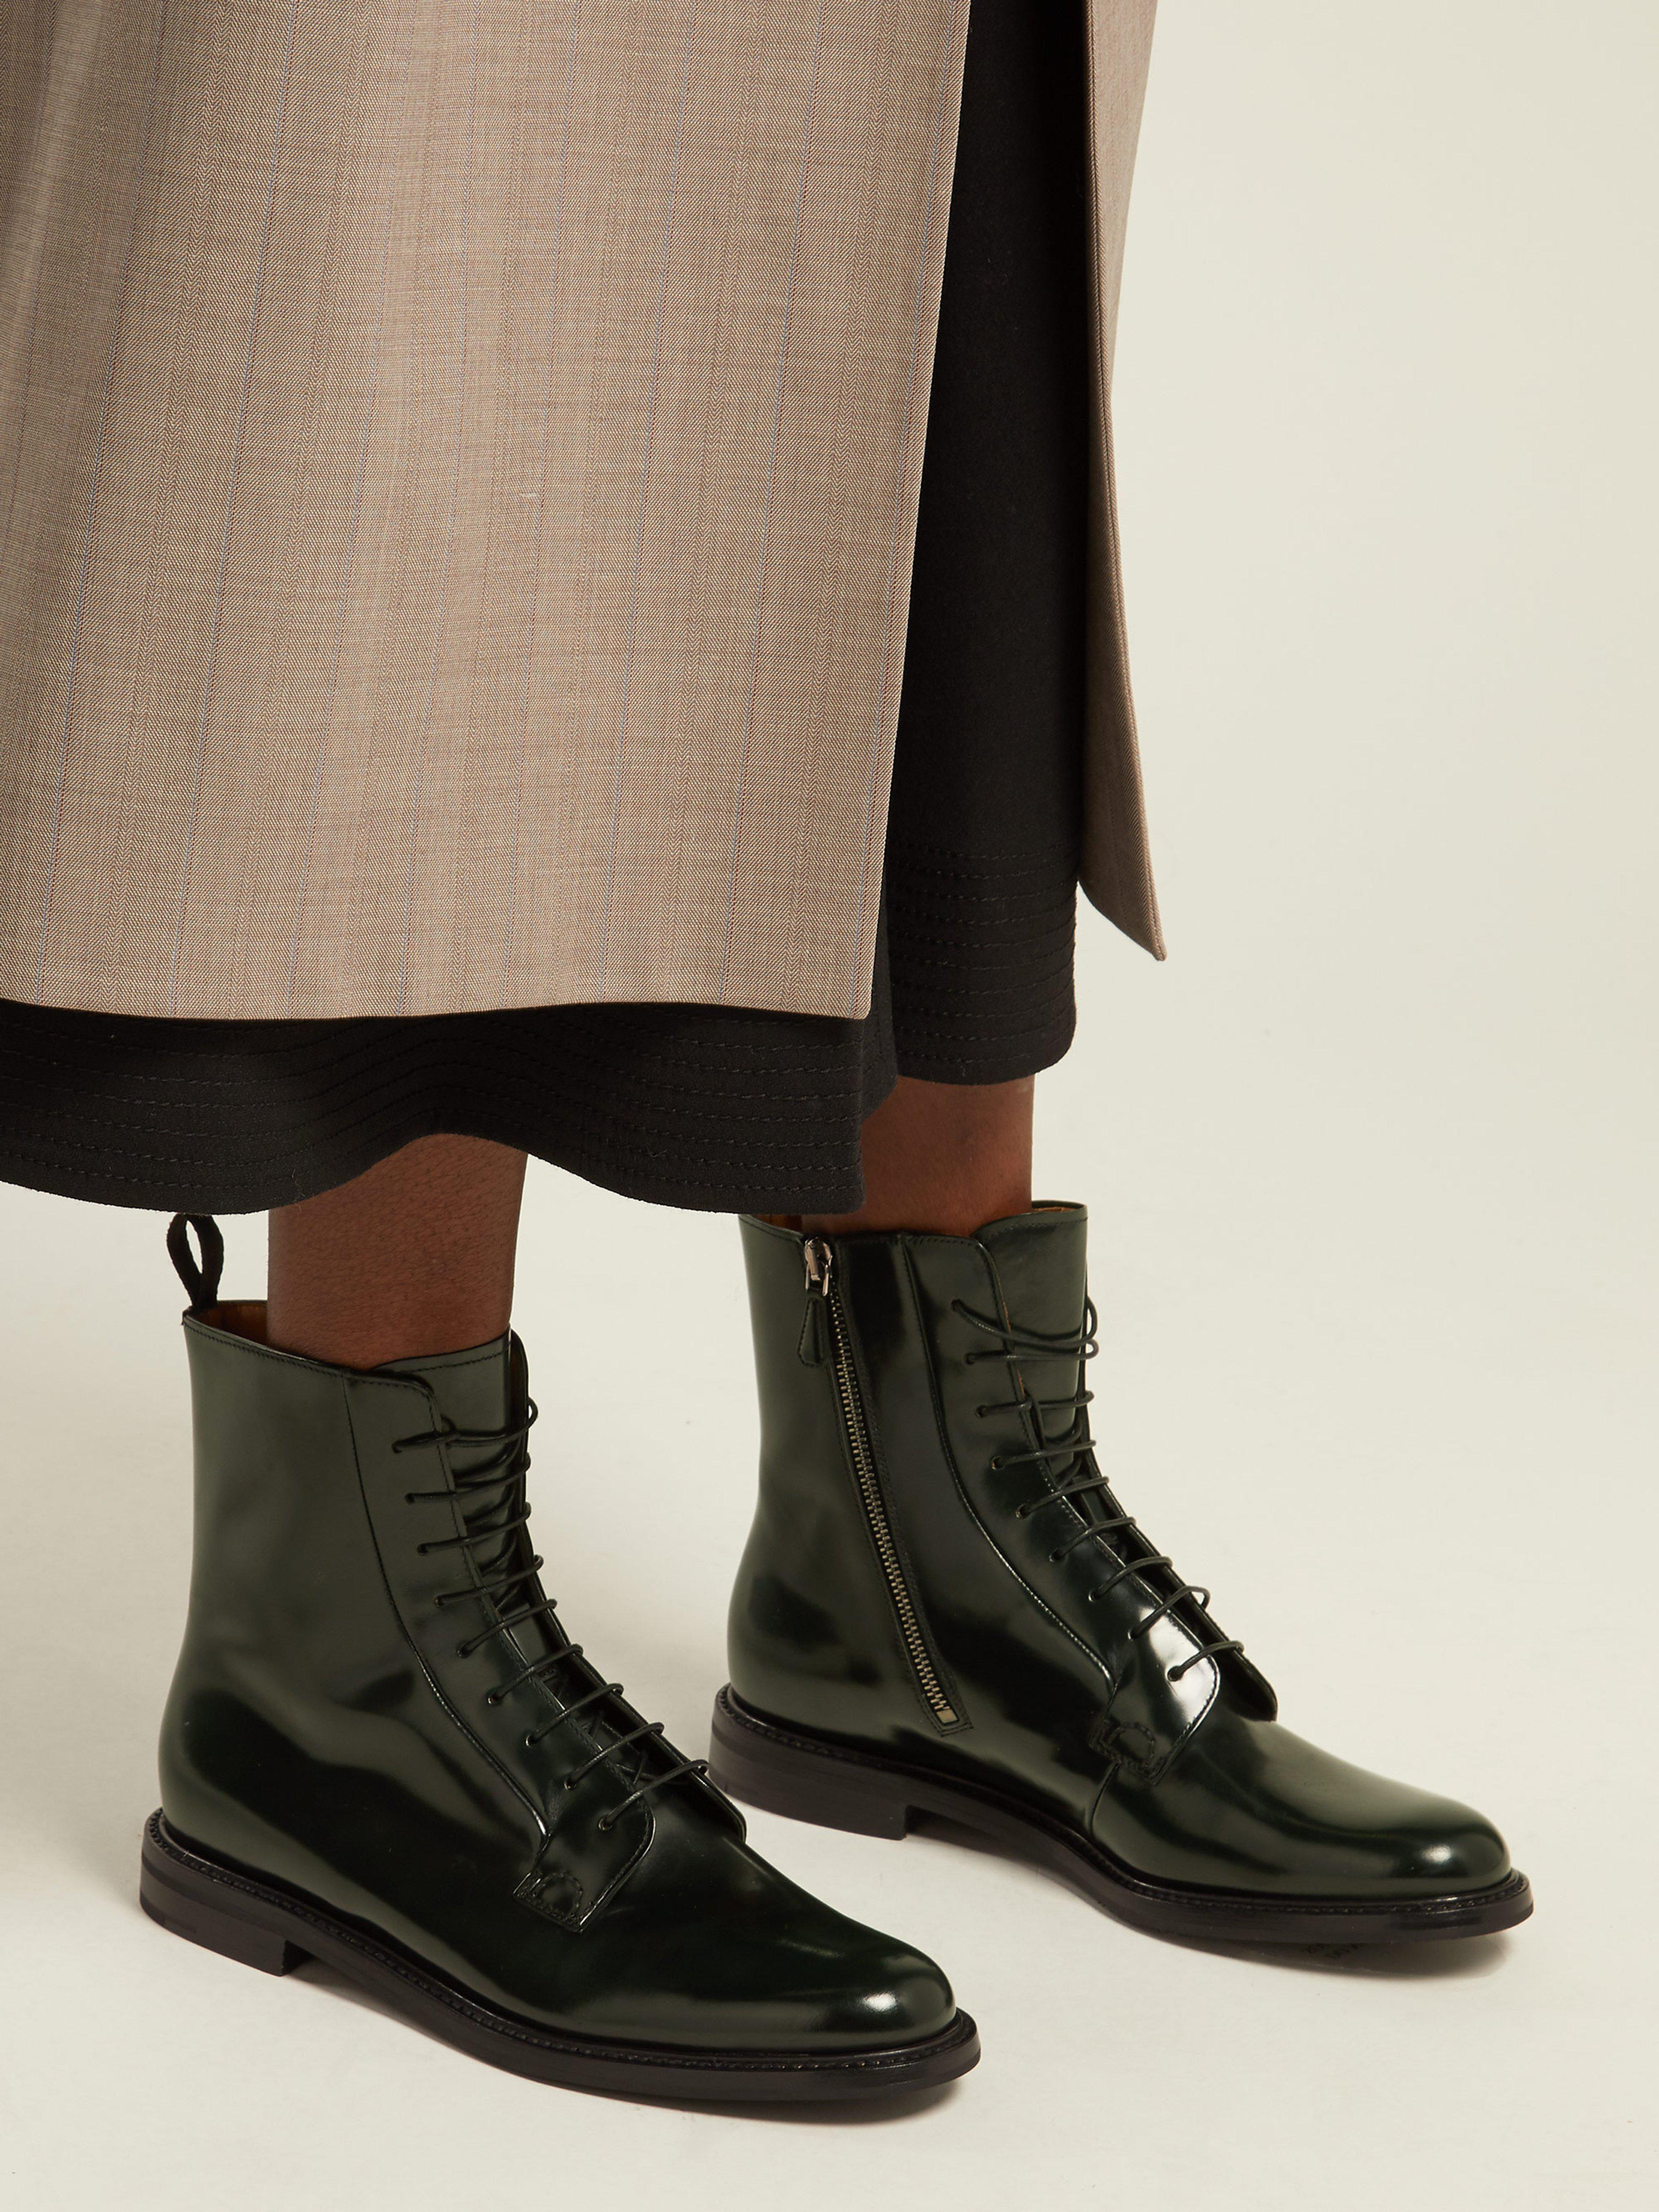 new product 5d36f a4900 churchs-dark-green-Alexandra-Lace-Up-Leather-Ankle-Boots.jpeg